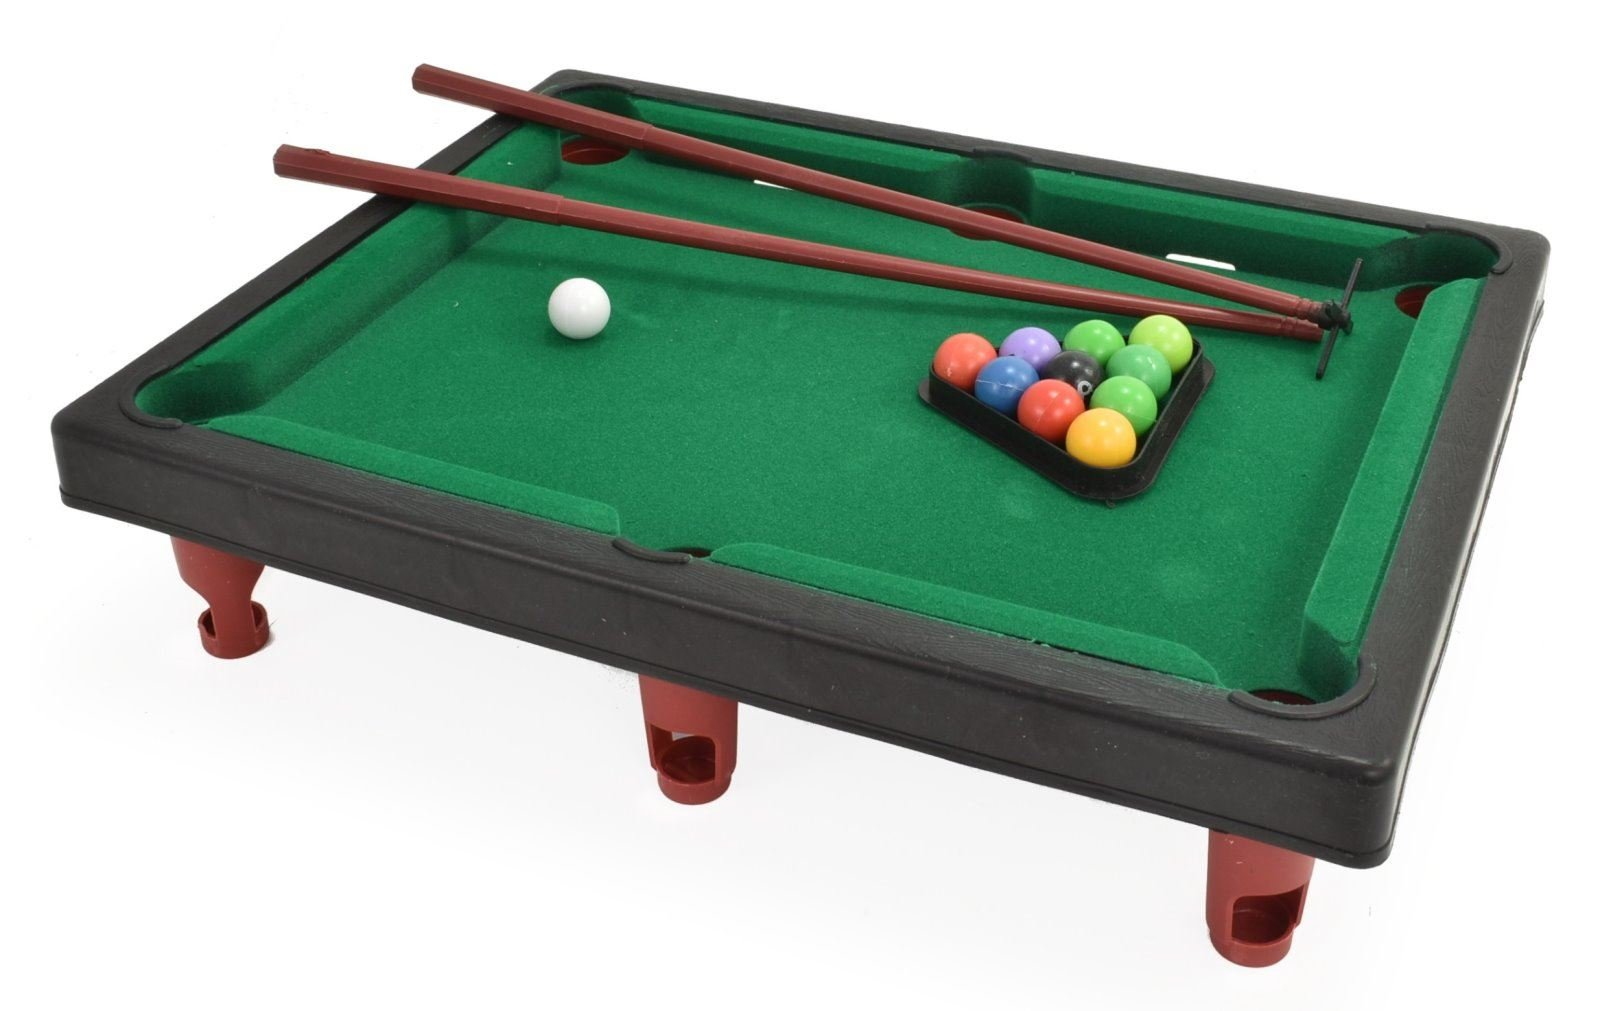 My Mini Tabletop Pool Snooker Table Game Set Toy Childrens Xmas Gift Ty824